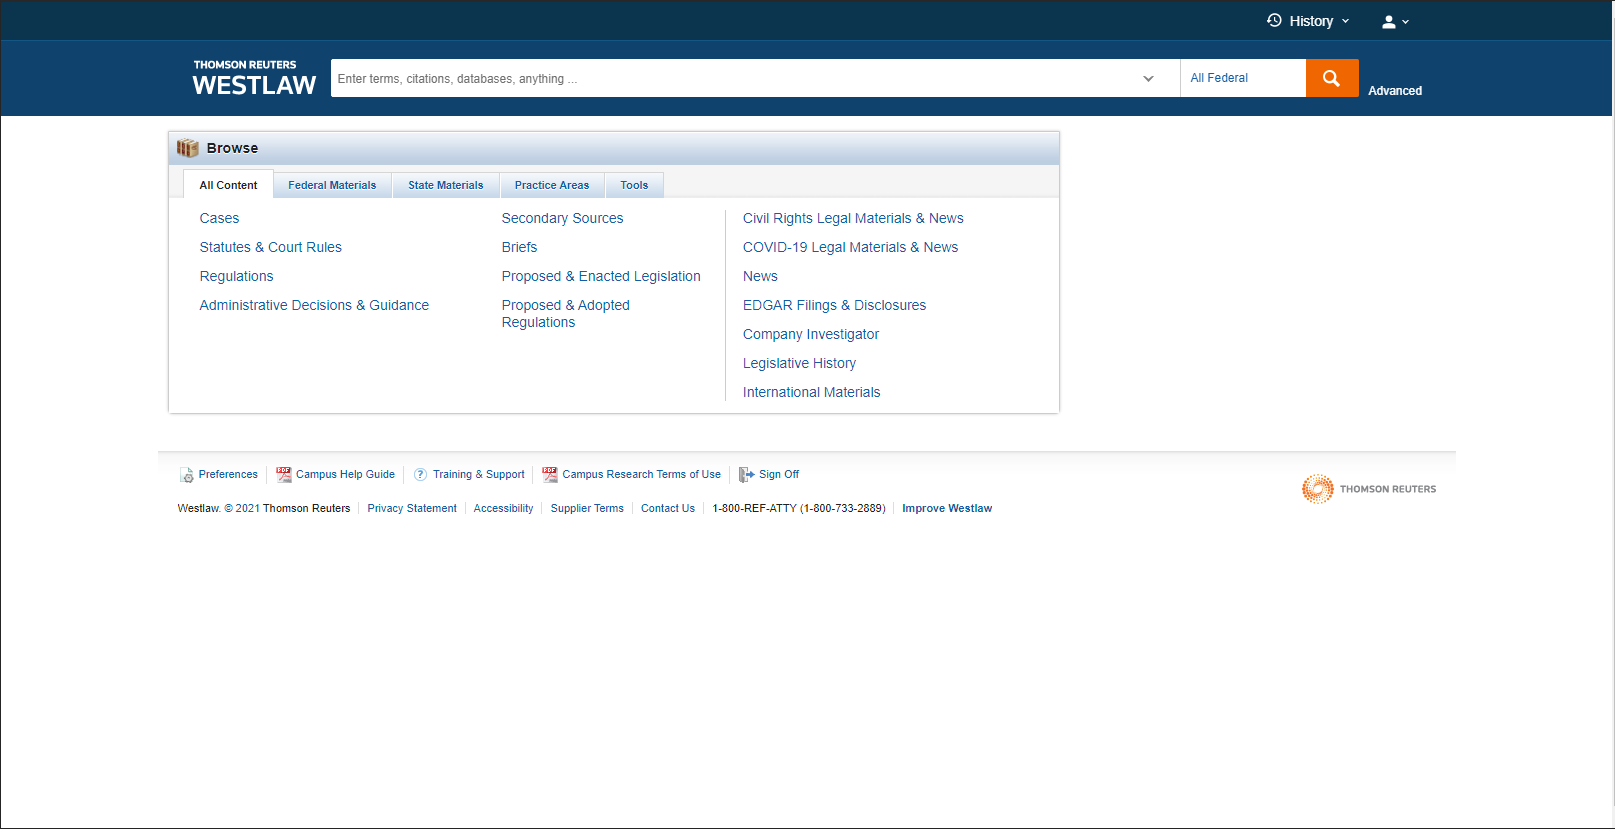 The front page of Westlaw